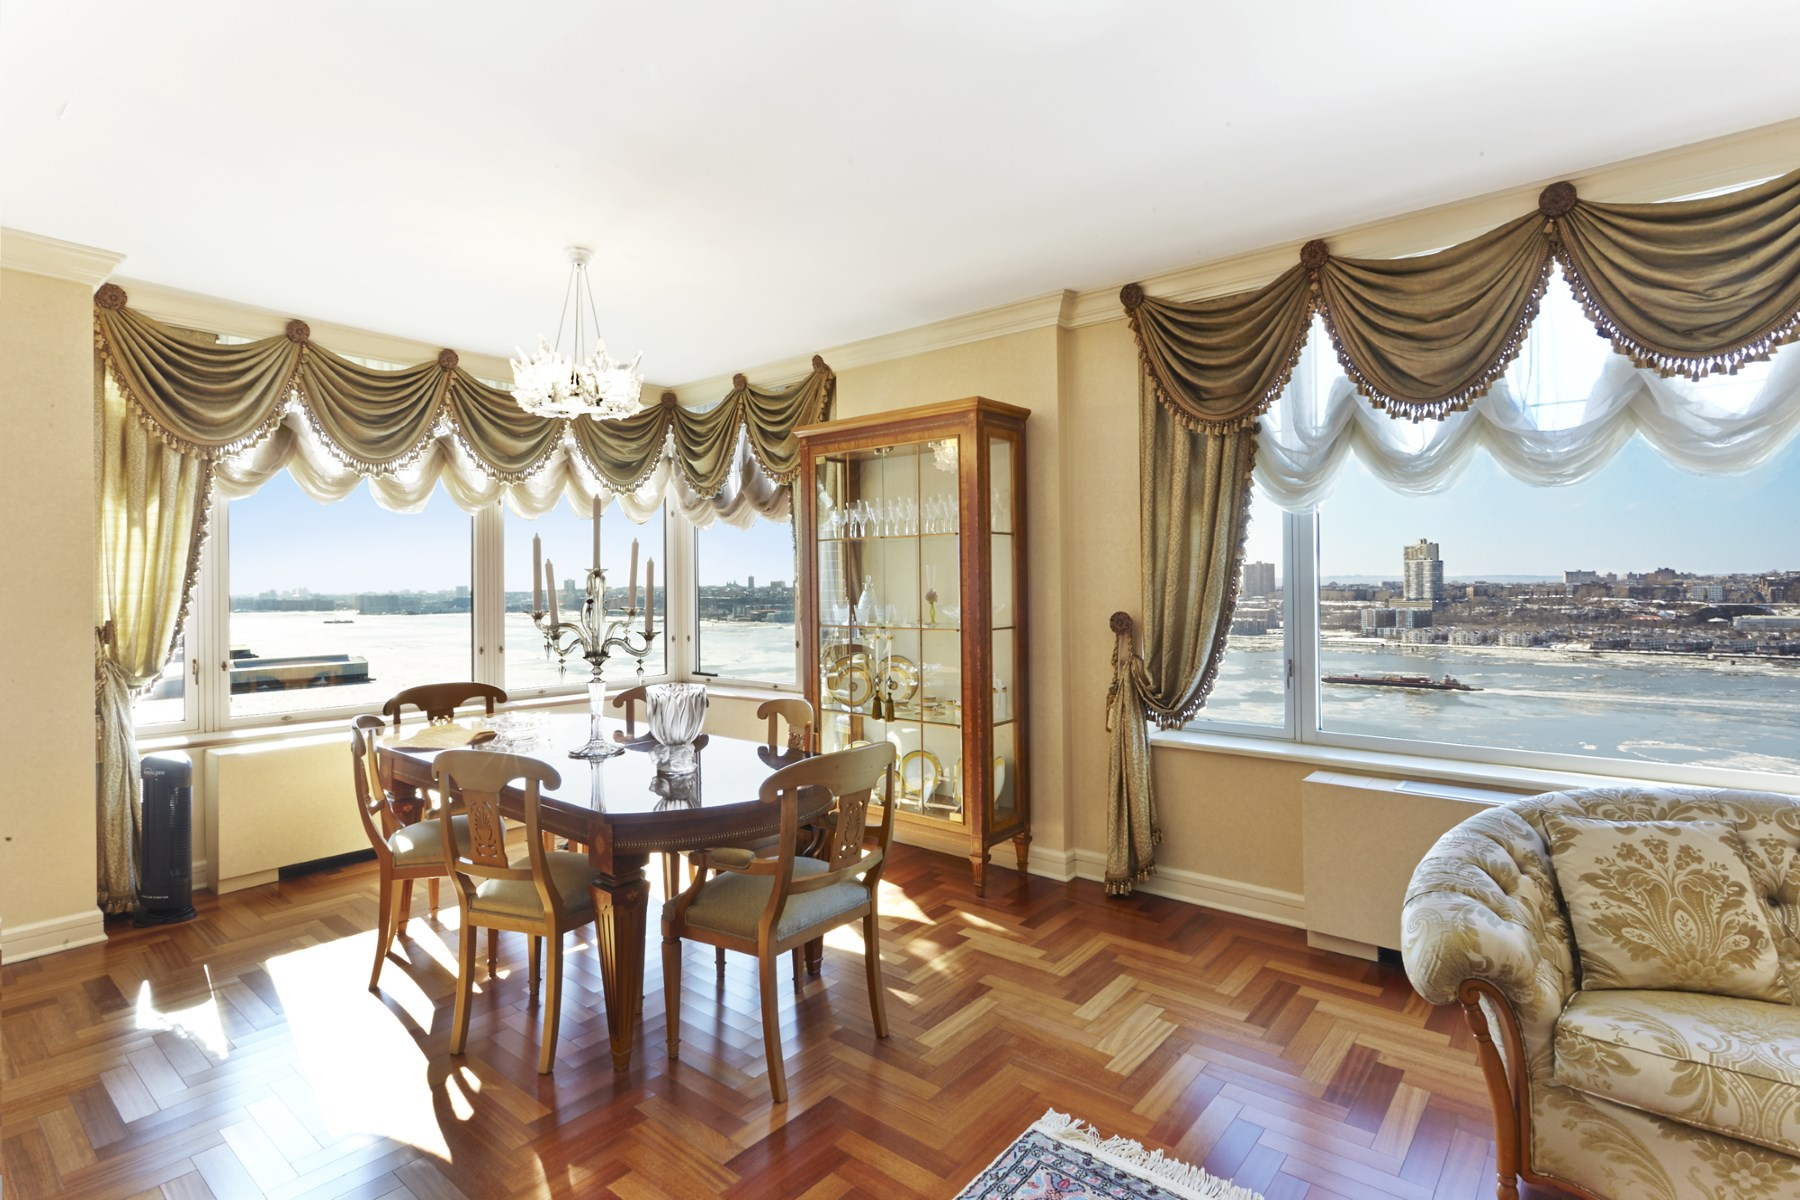 Condominium for Sale at Watch the Boats Sail By 220 Riverside Blvd Apt 23h Upper West Side, New York, New York 10069 United States